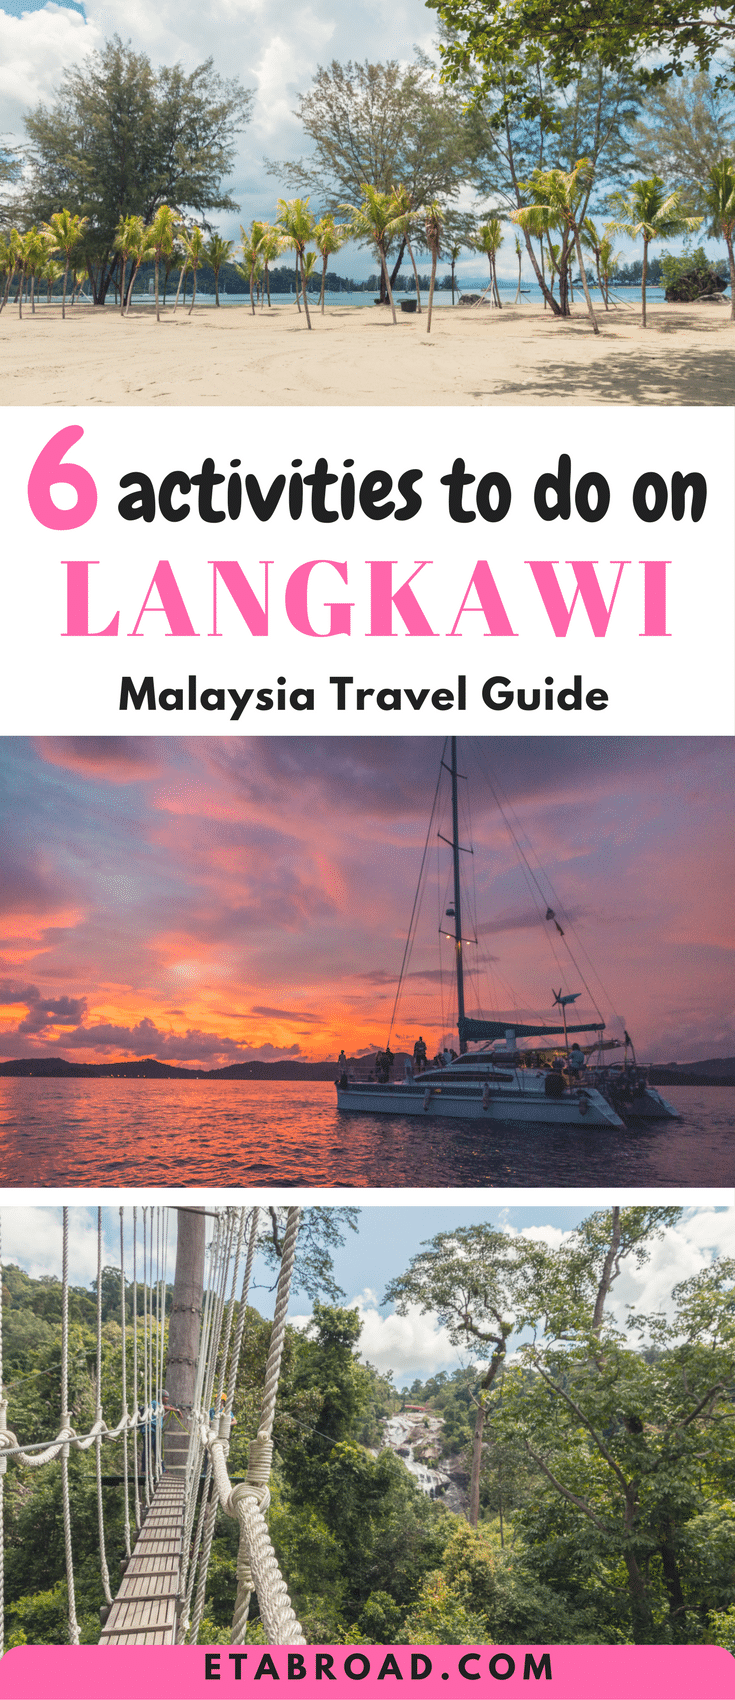 Best Langkawi activities | What to do on Langkawi | Langkawi Malaysia | What can you do in Langkawi | Top 5 Activities | Travel to Langkawi and things to do